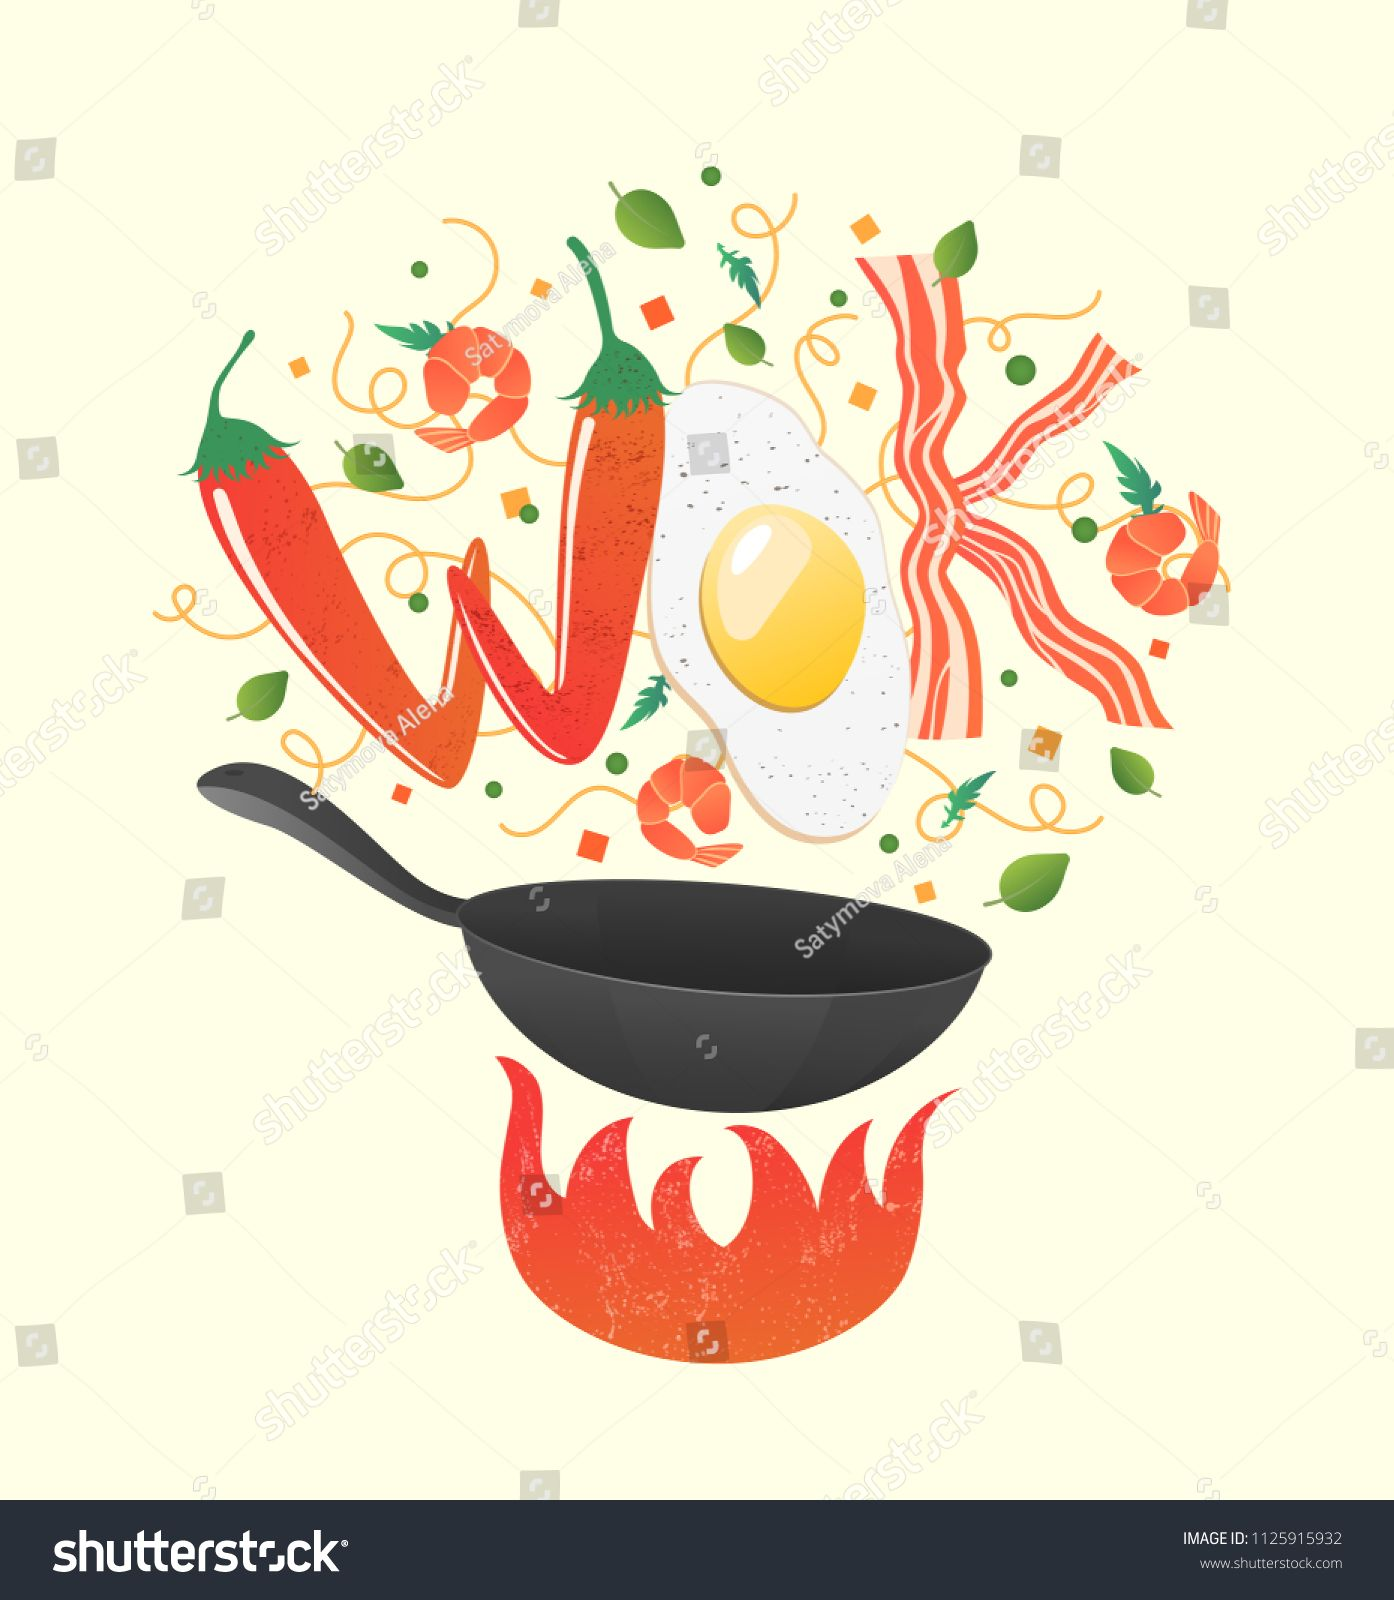 Wok Logo For Thai Or Chinese Restaurant Stir Fry With Edible Letters Cooking Process Vector Illustration Flip Chinese Restaurant Wok Chinese Food Restaurant